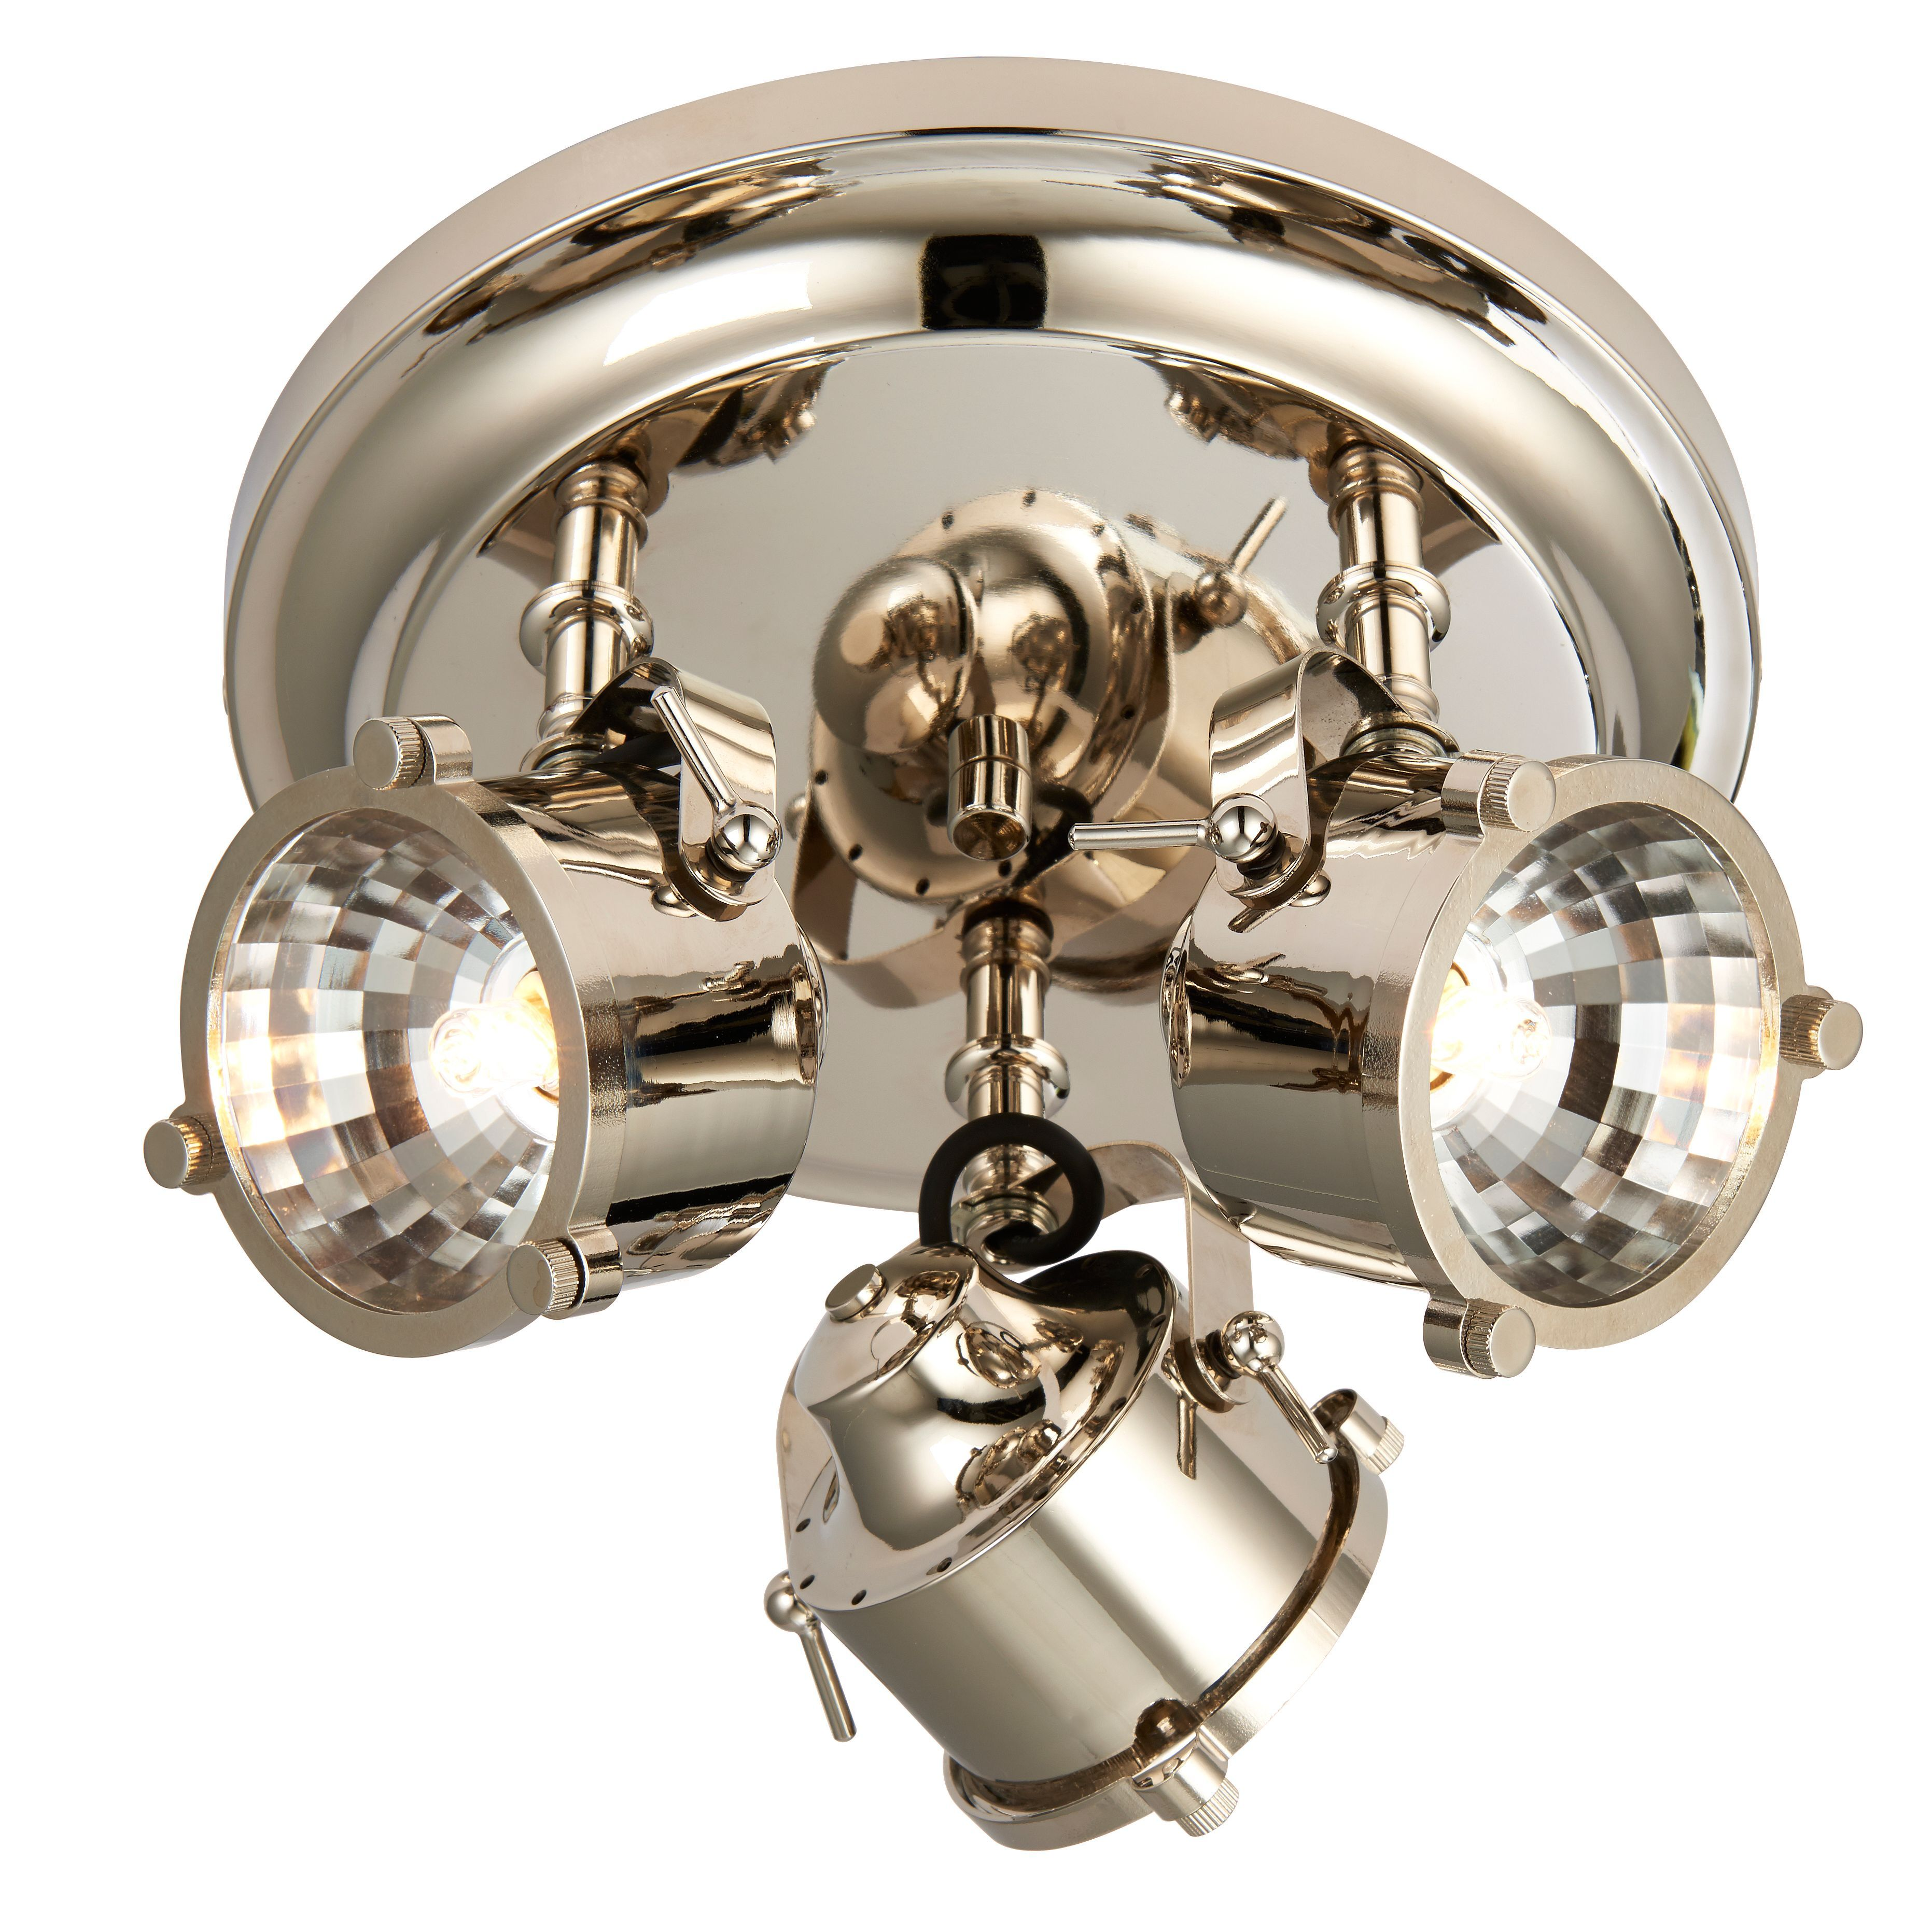 Cayley Nickle Effect 3 Lamp Ceiling Spotlight